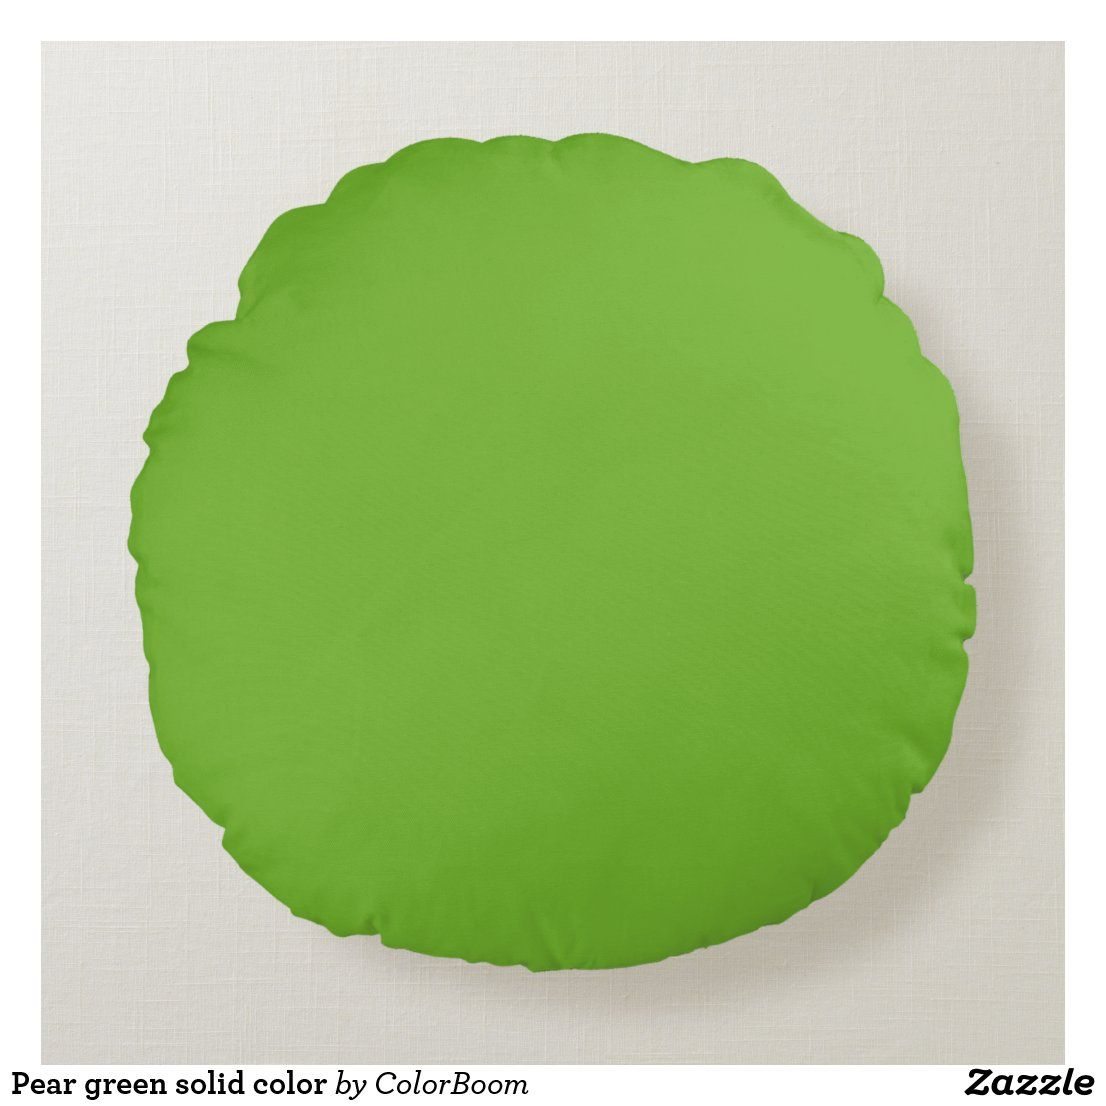 Pear green solid color round pillow